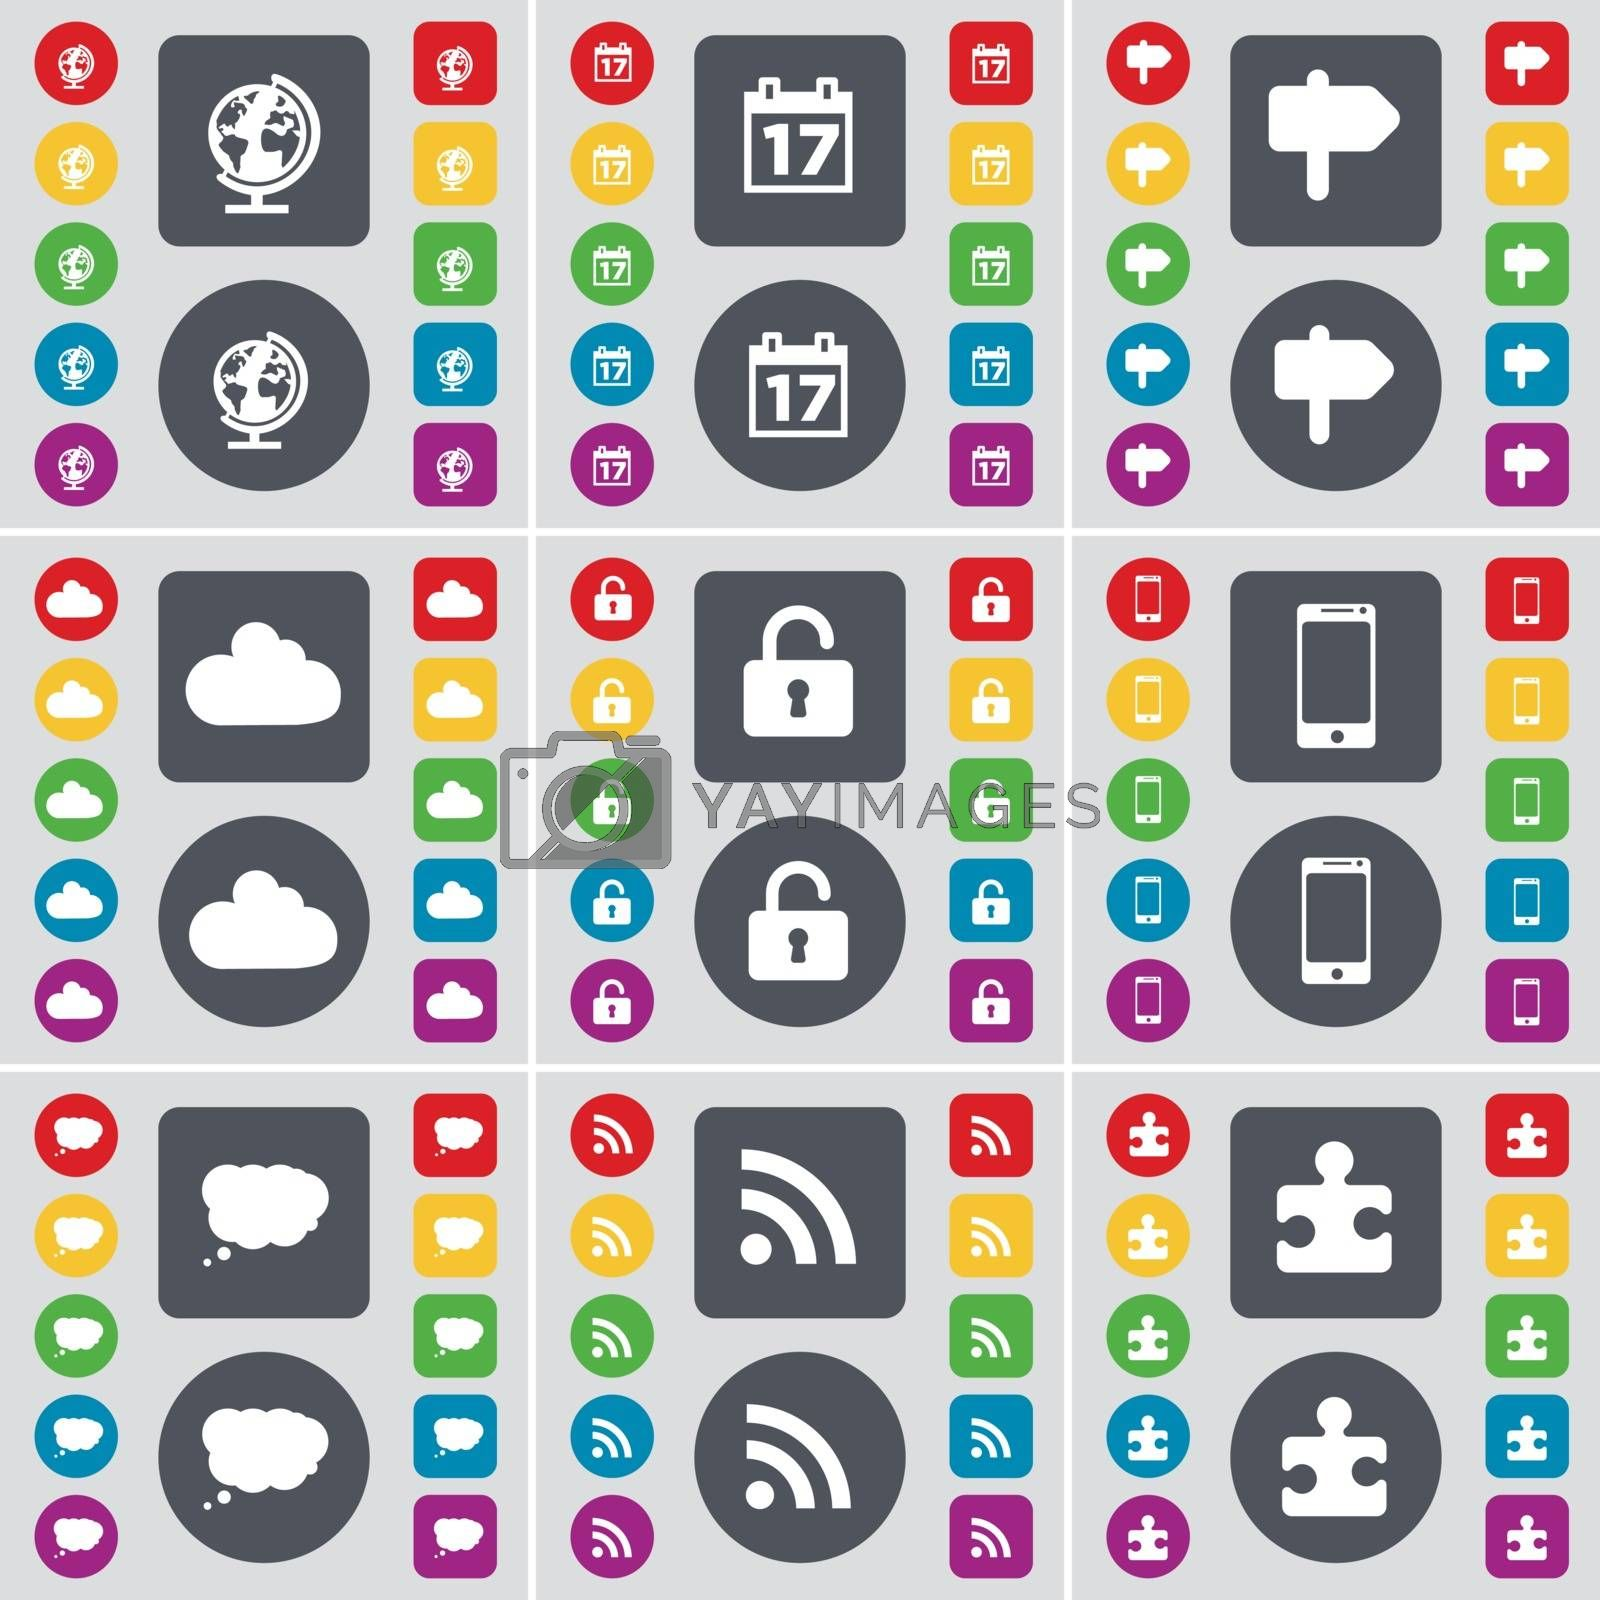 Royalty free image of Globe, Calendar, Signpost, Cloud, Lock, Smartphone, Chat cloud, RSS, Puzzle part icon symbol. A large set of flat, colored buttons for your design. Vector by serhii_lohvyniuk